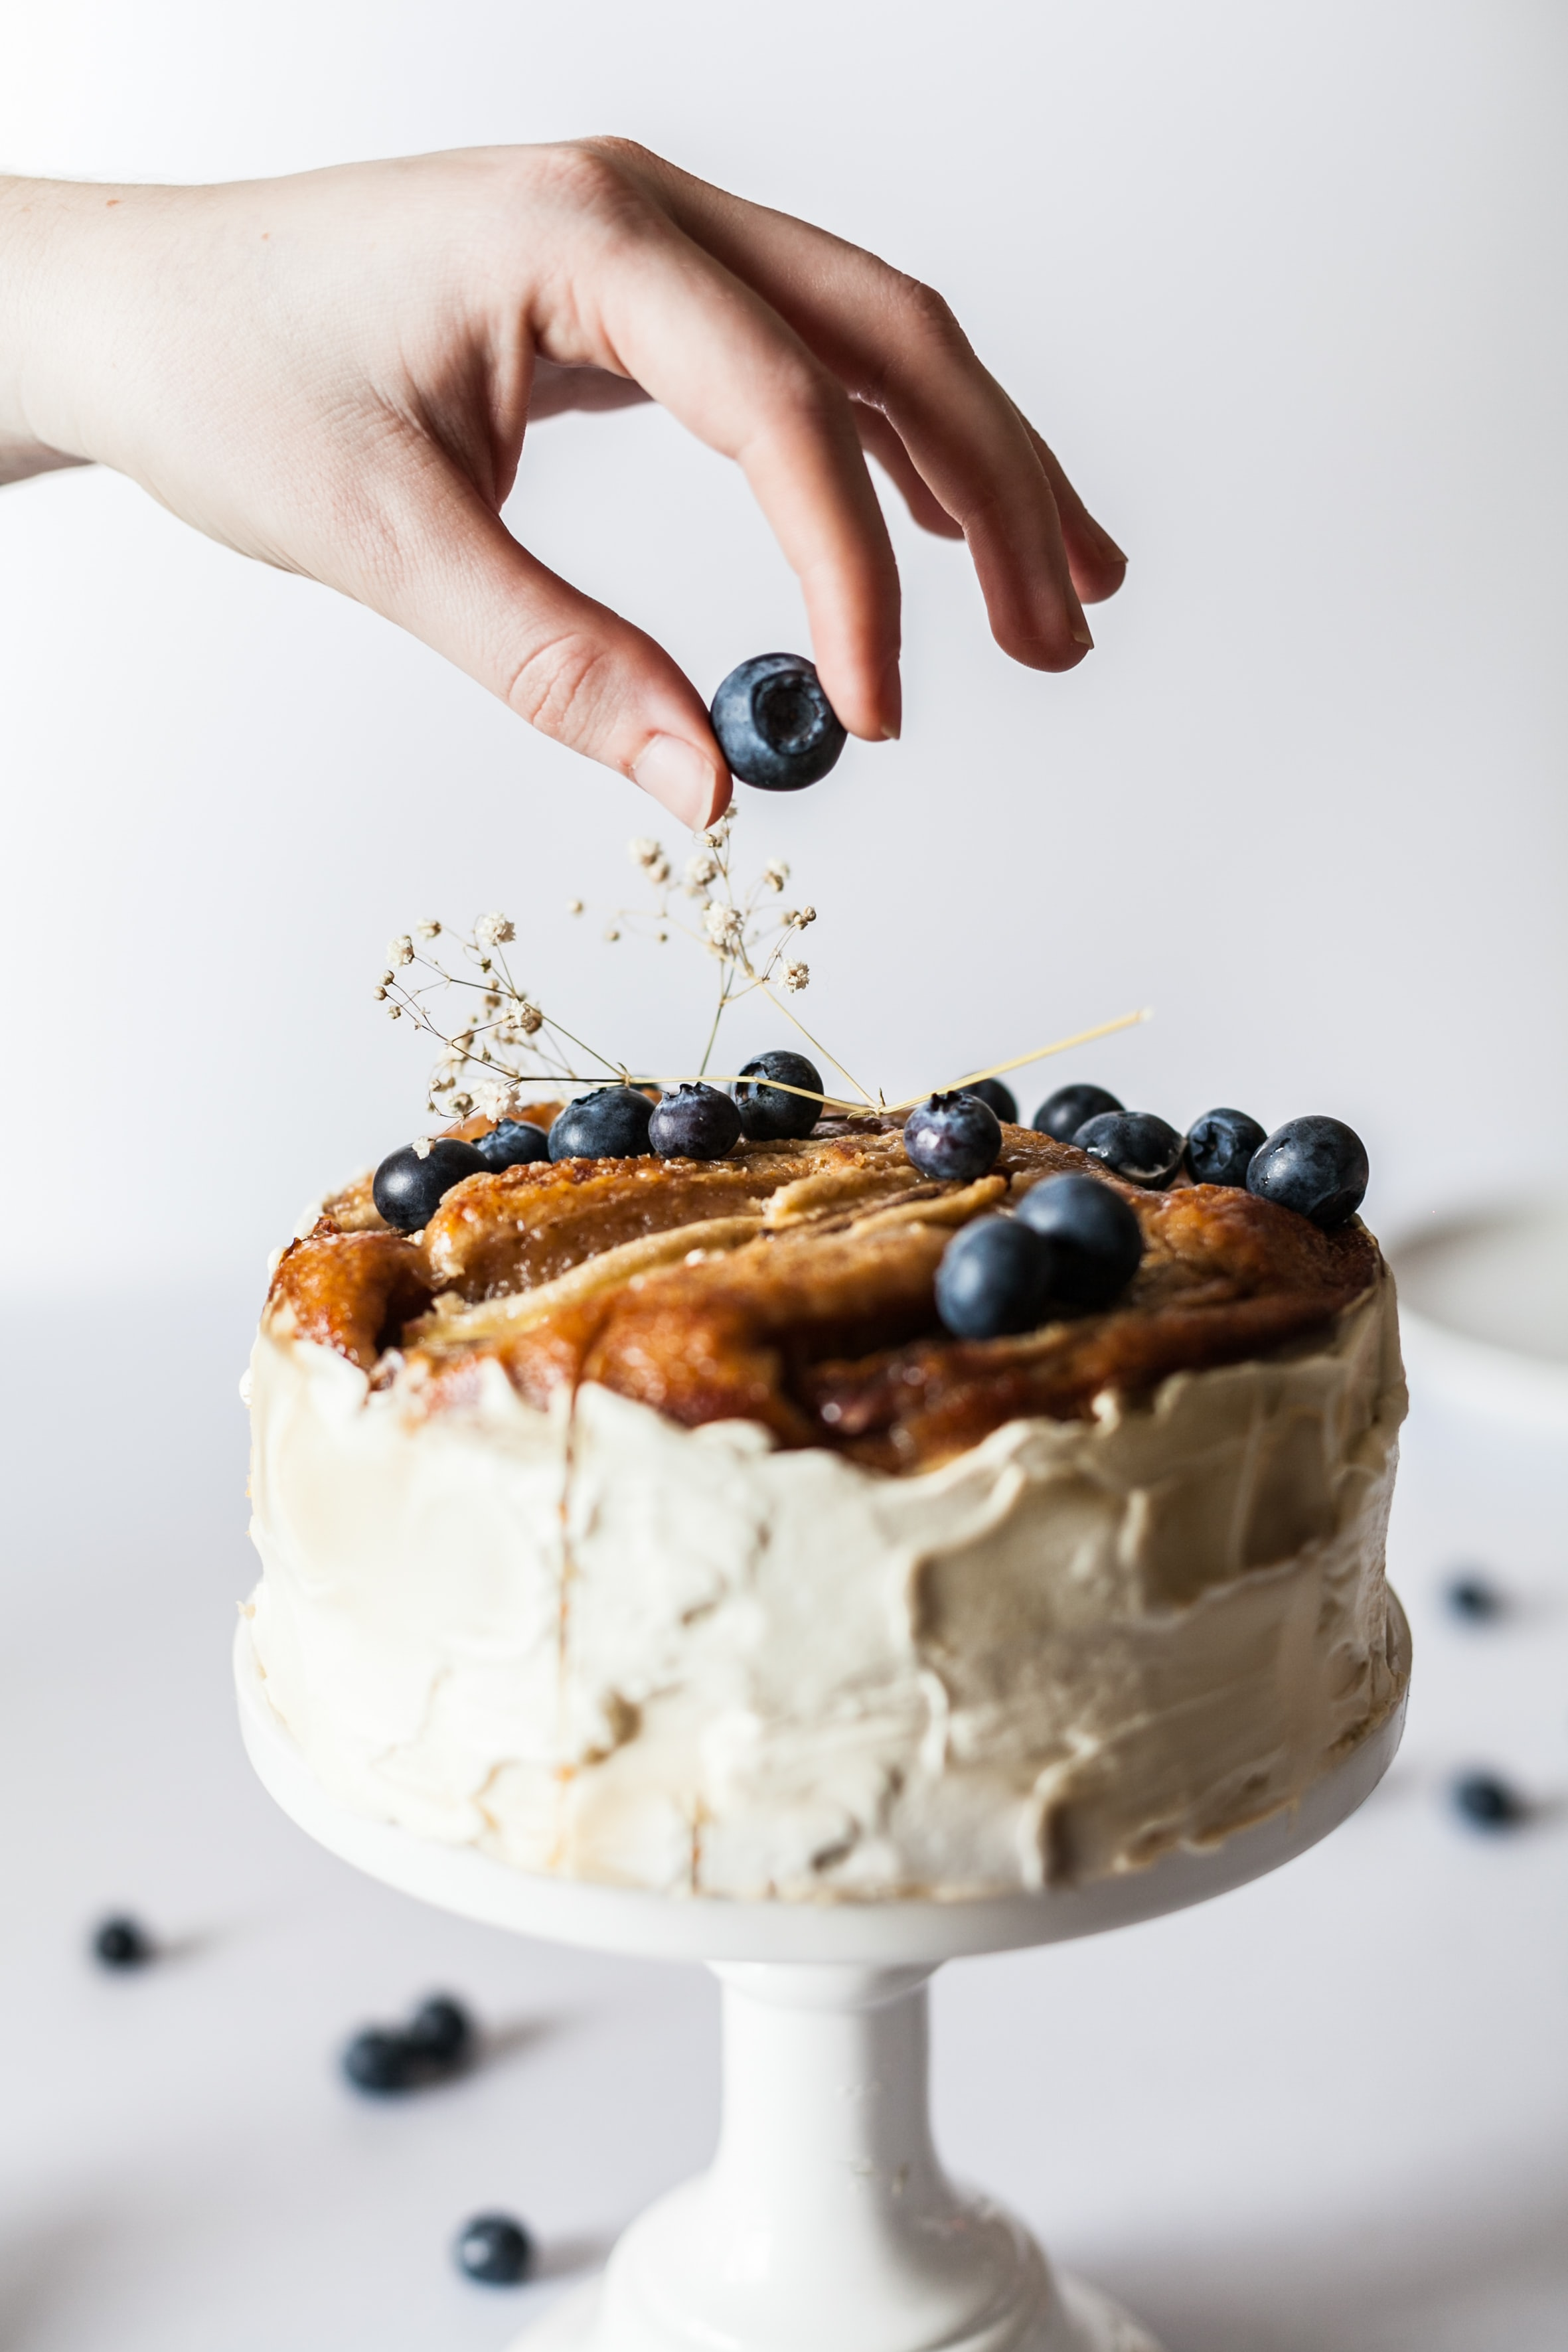 lady decorating a homemade cake with blueberries